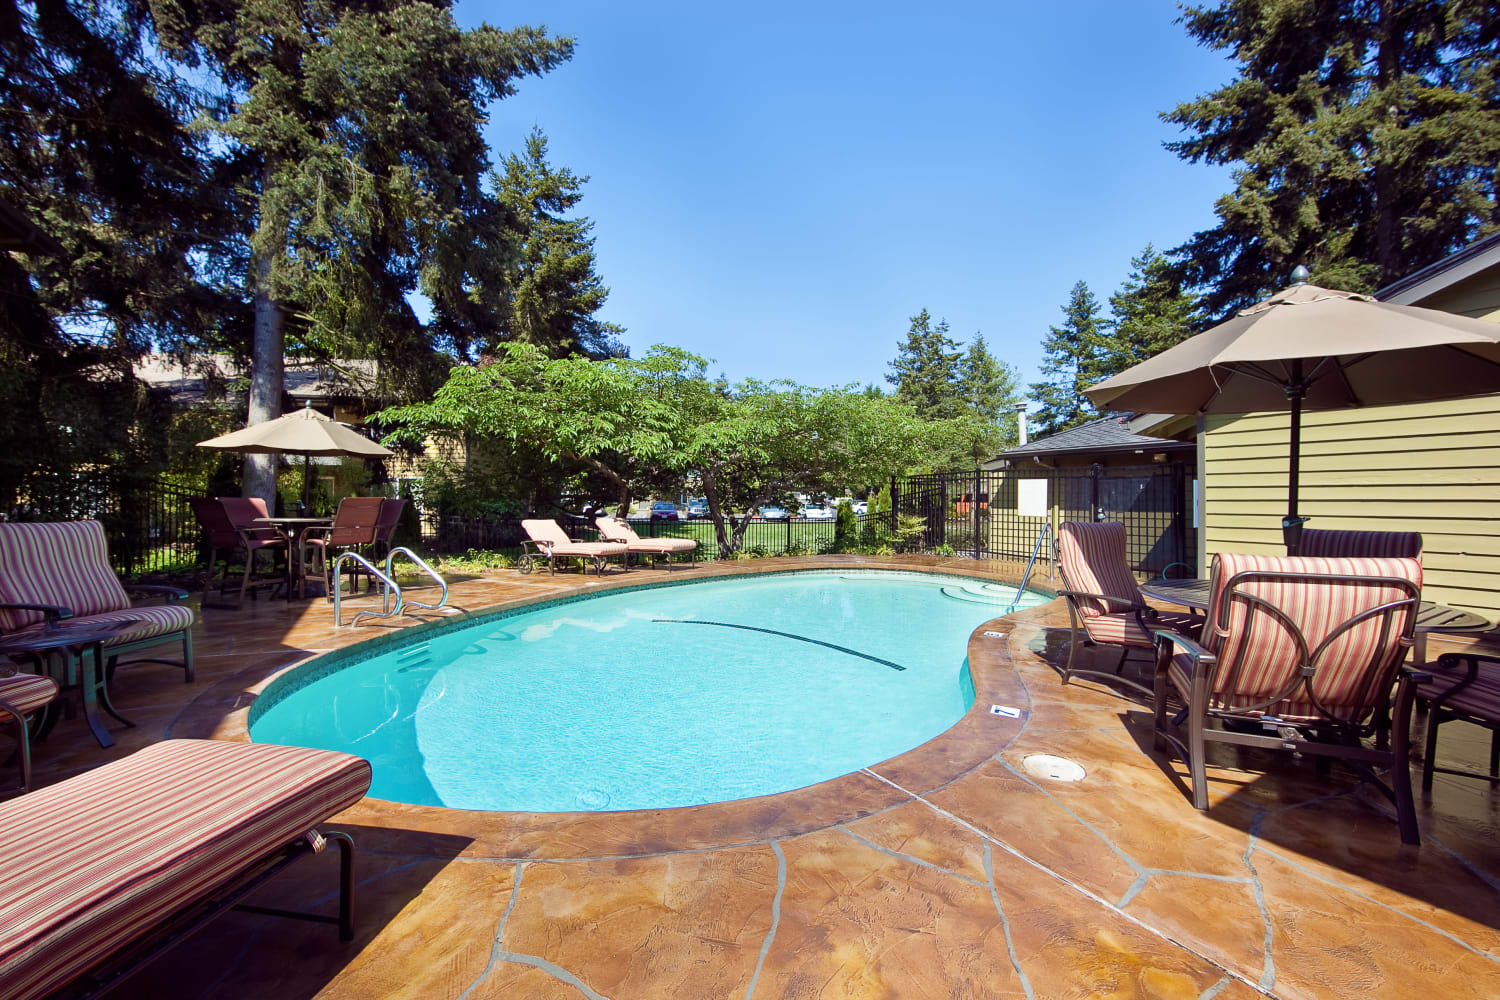 Sparkling swimming pool at Edgewood Park Apartments in Bellevue, Washington